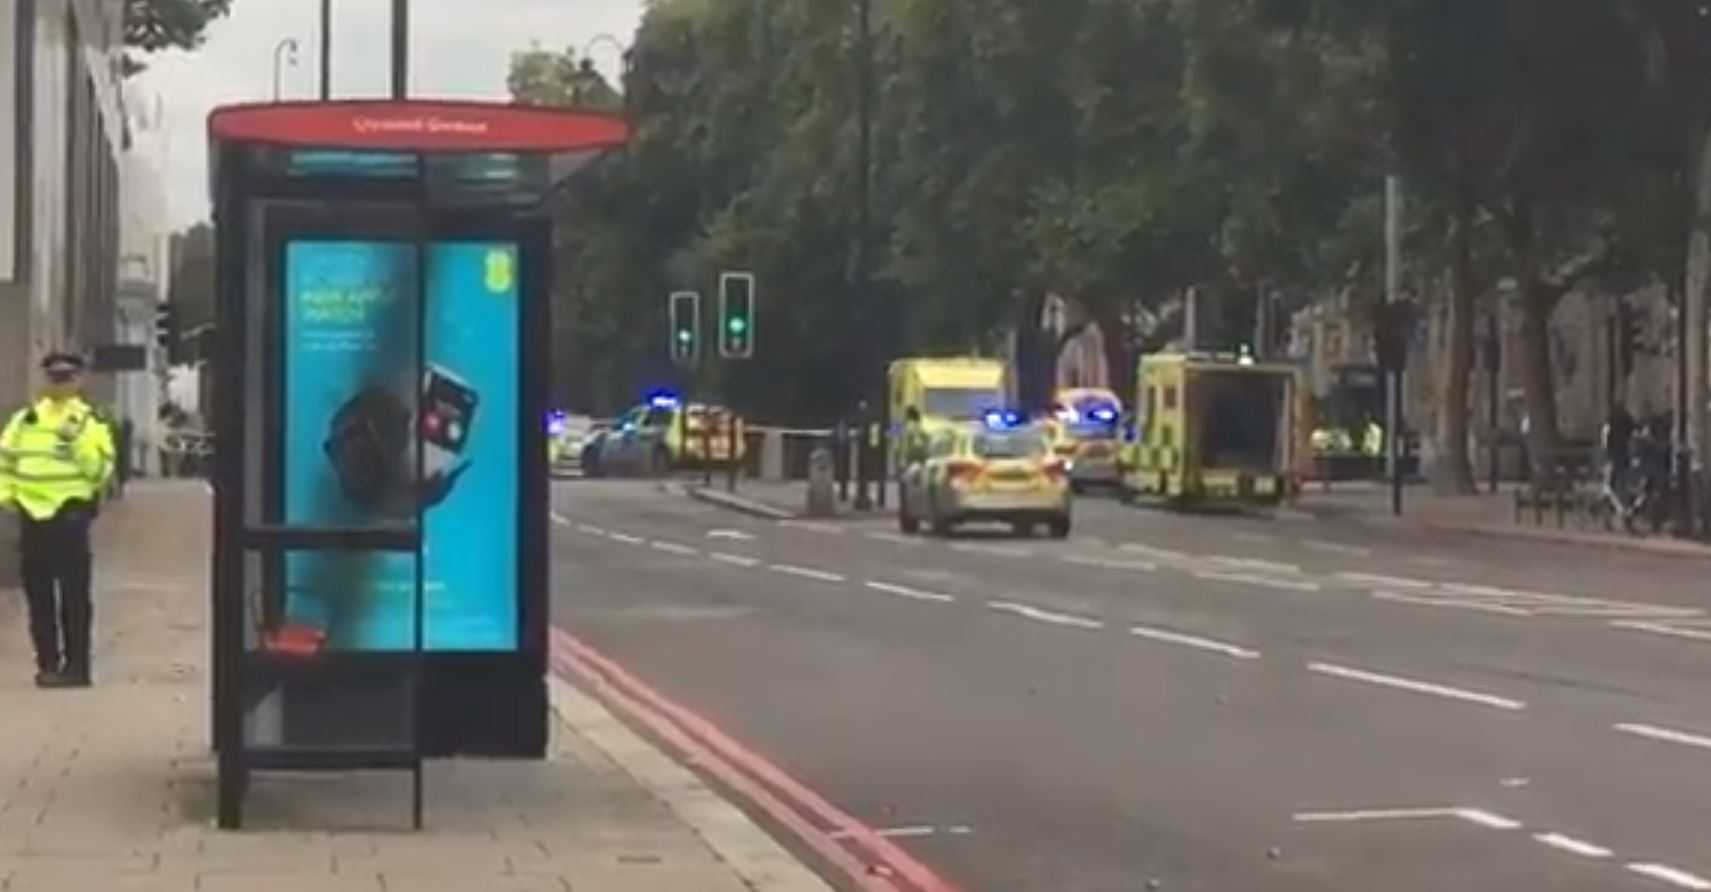 Auto  crashes near London's museum, terrorism ruled out